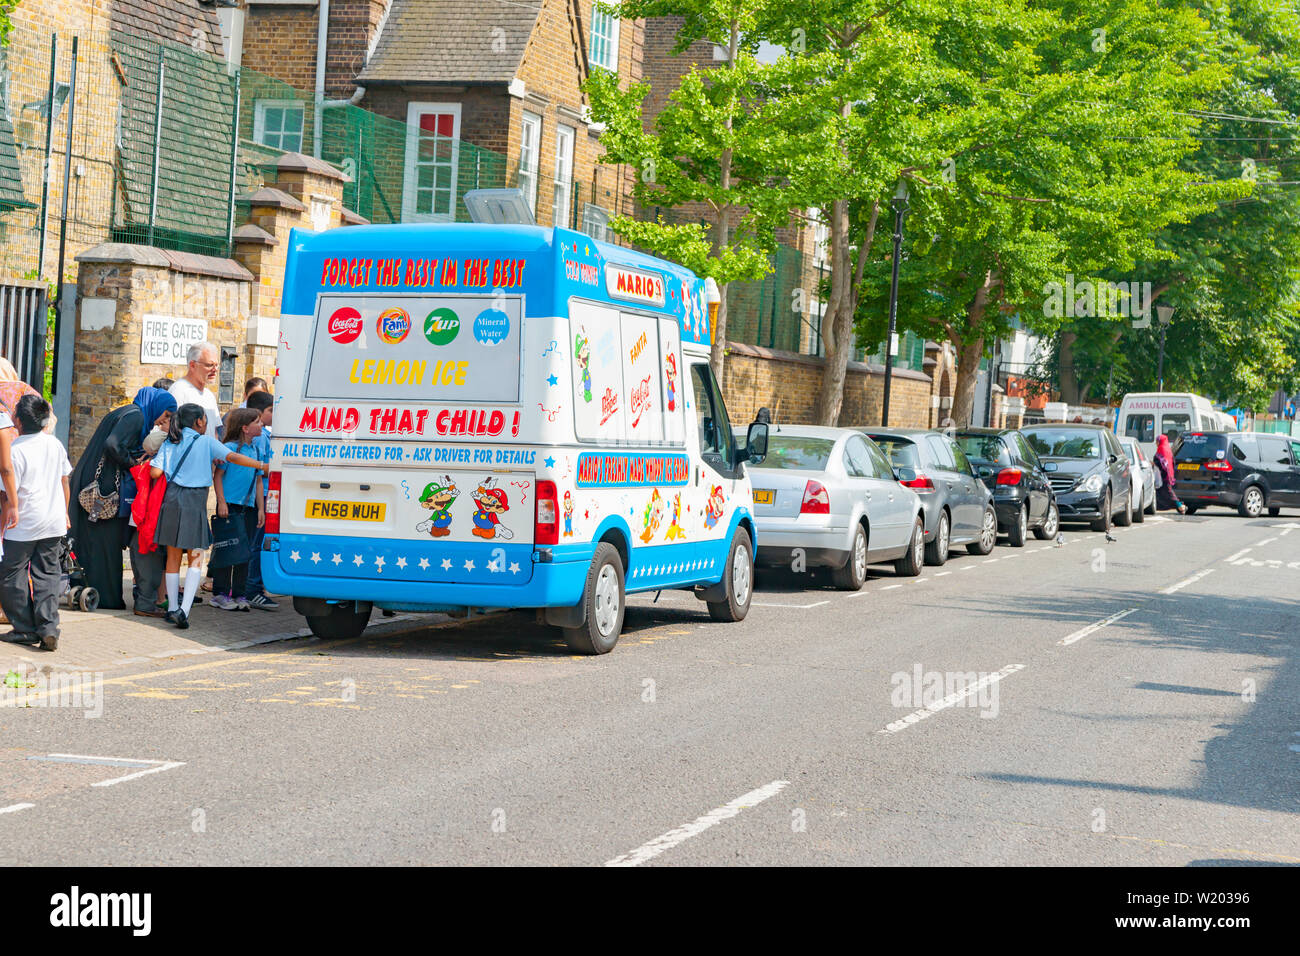 LONDON ENGLAND - JULY 13 2013; School children gather around ice-ceam truck with 'Mind that Child' sign after school in city typical street - Stock Image